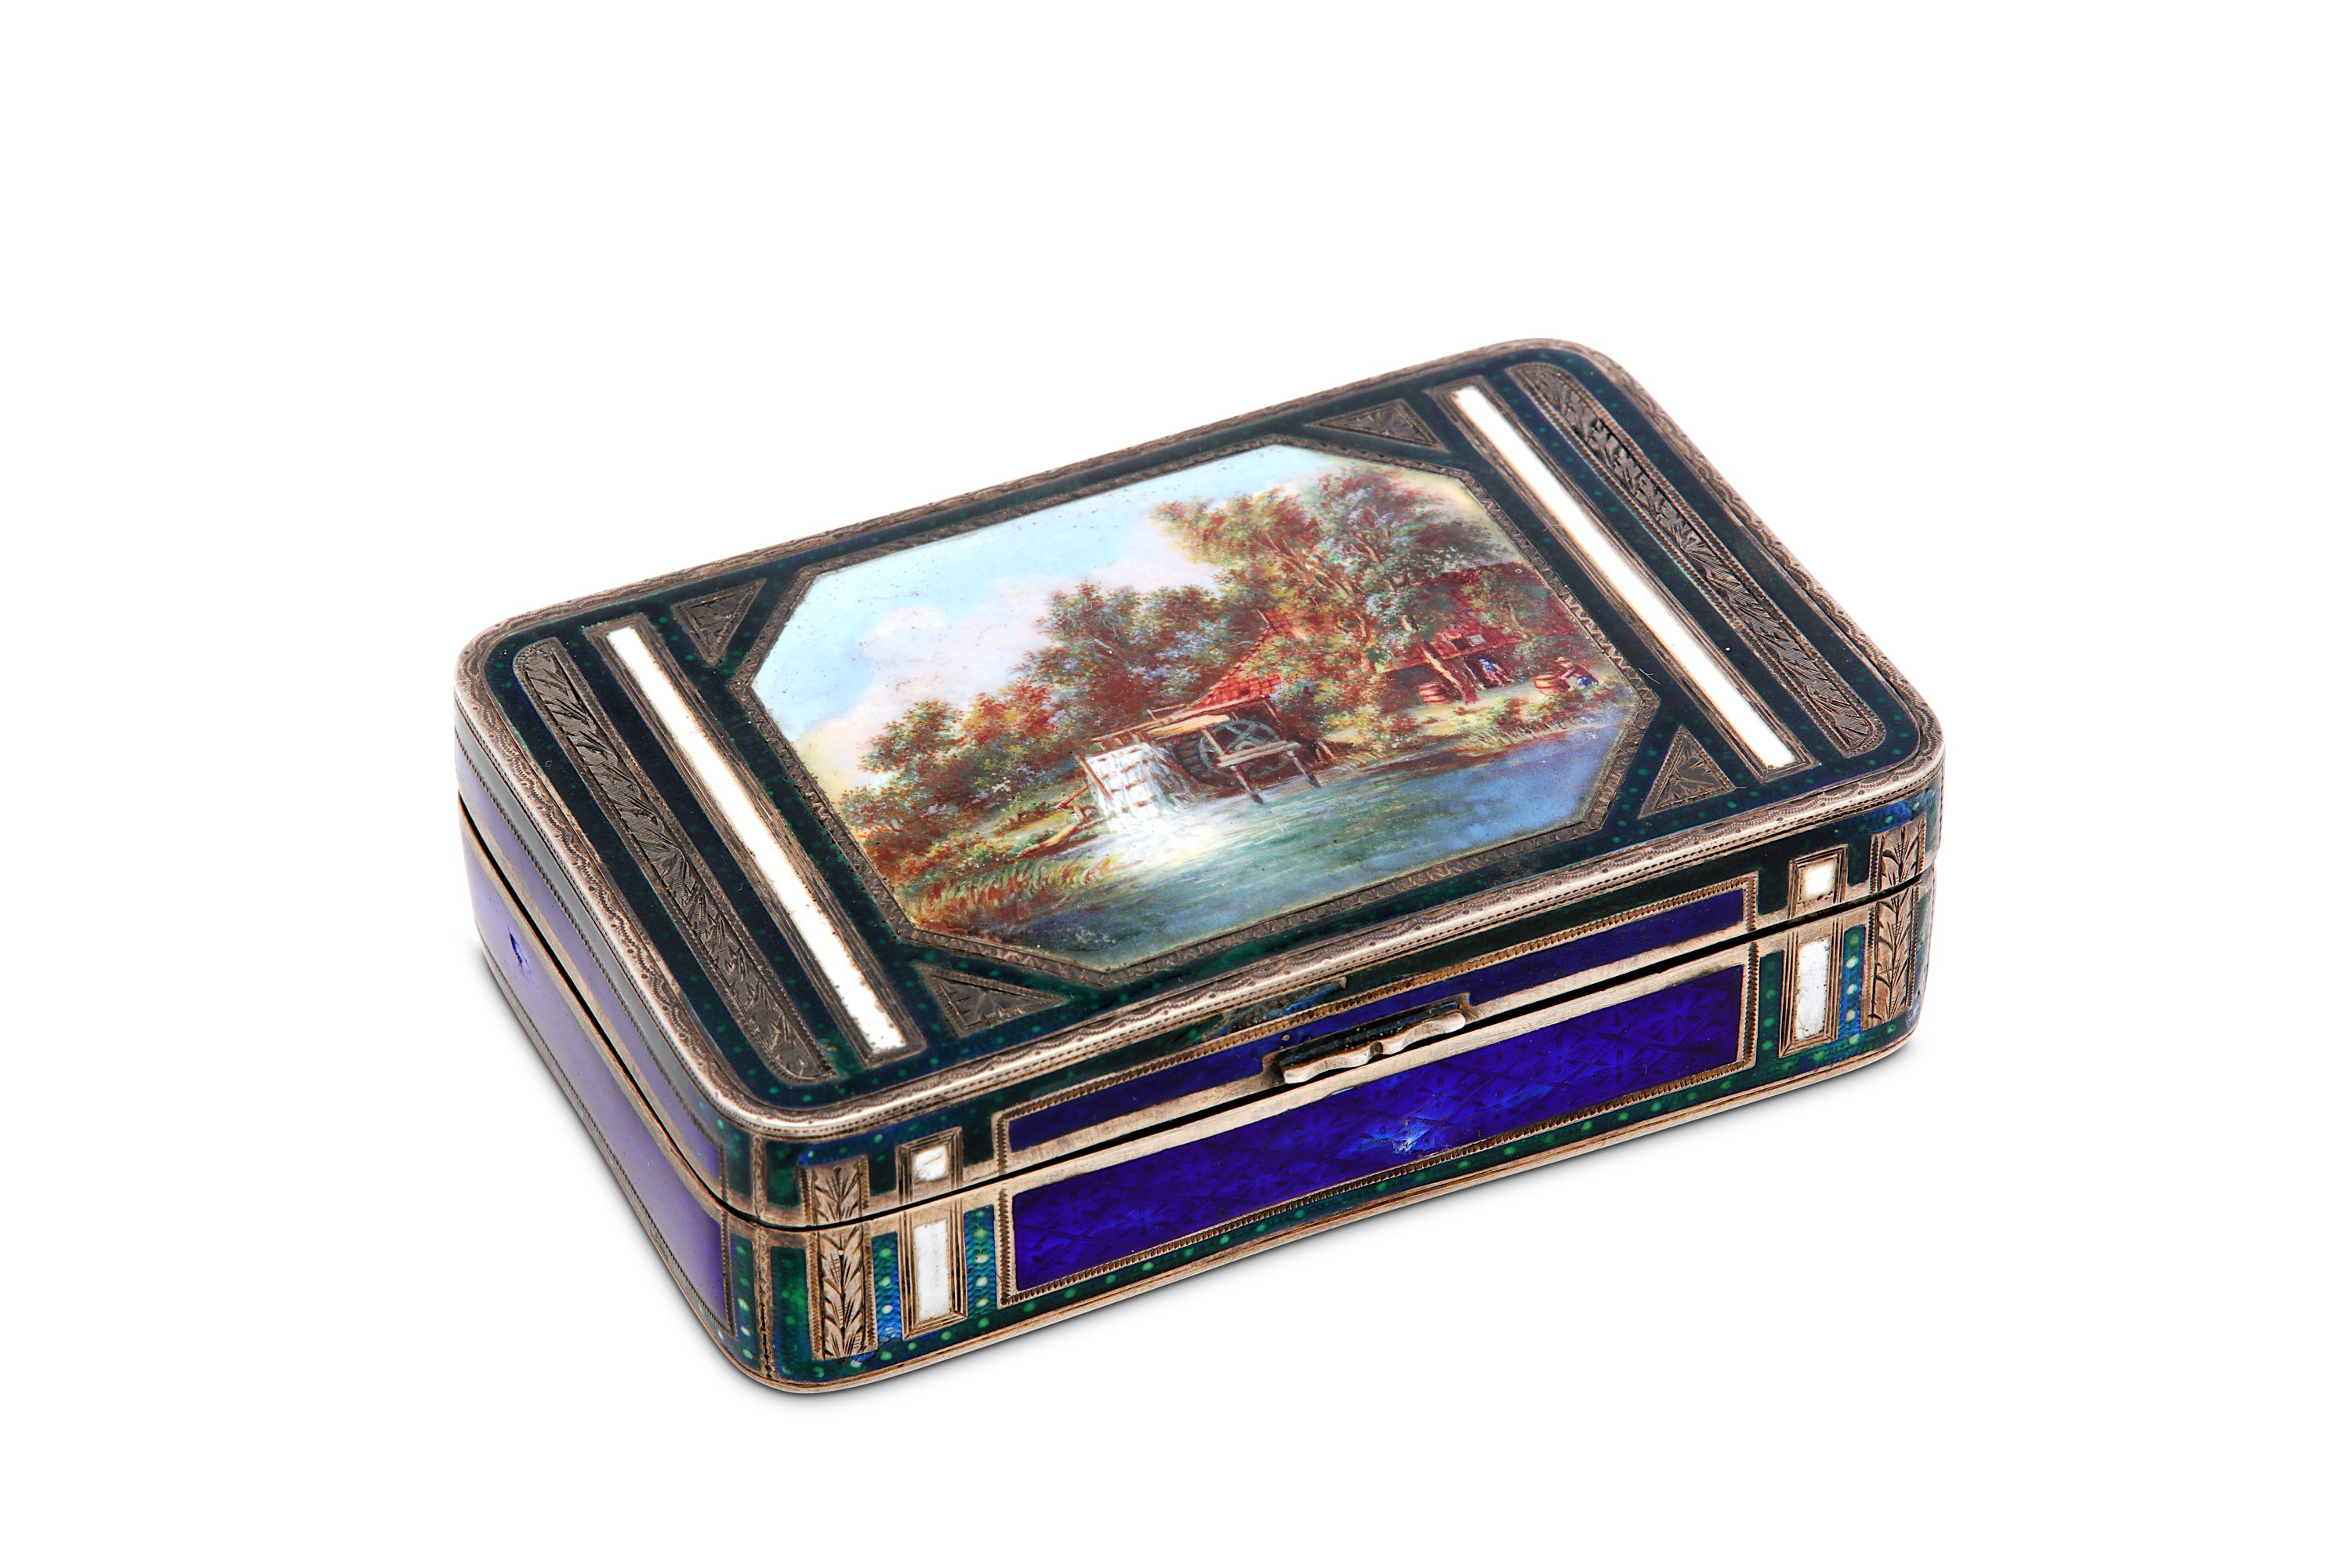 Lot 6 - An early 20th century German or Swiss 935 standard silver and guilloche enamel snuff box, circa 1910